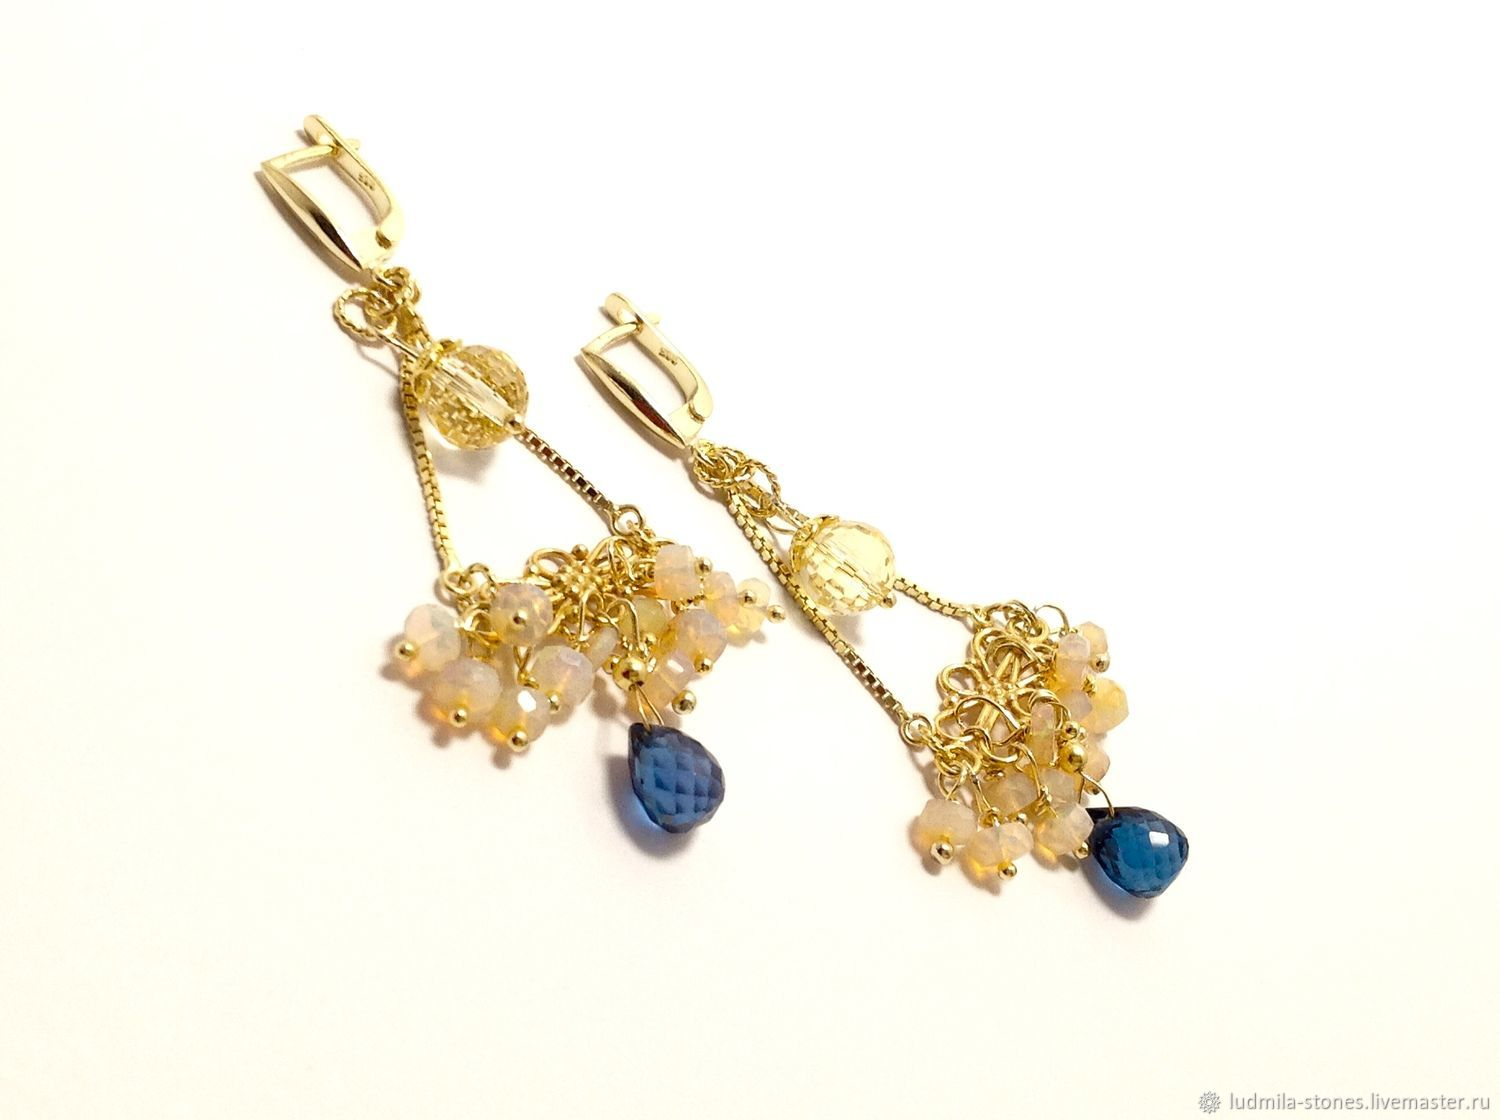 Earrings with opal and blue Topaz, Earrings, Moscow,  Фото №1